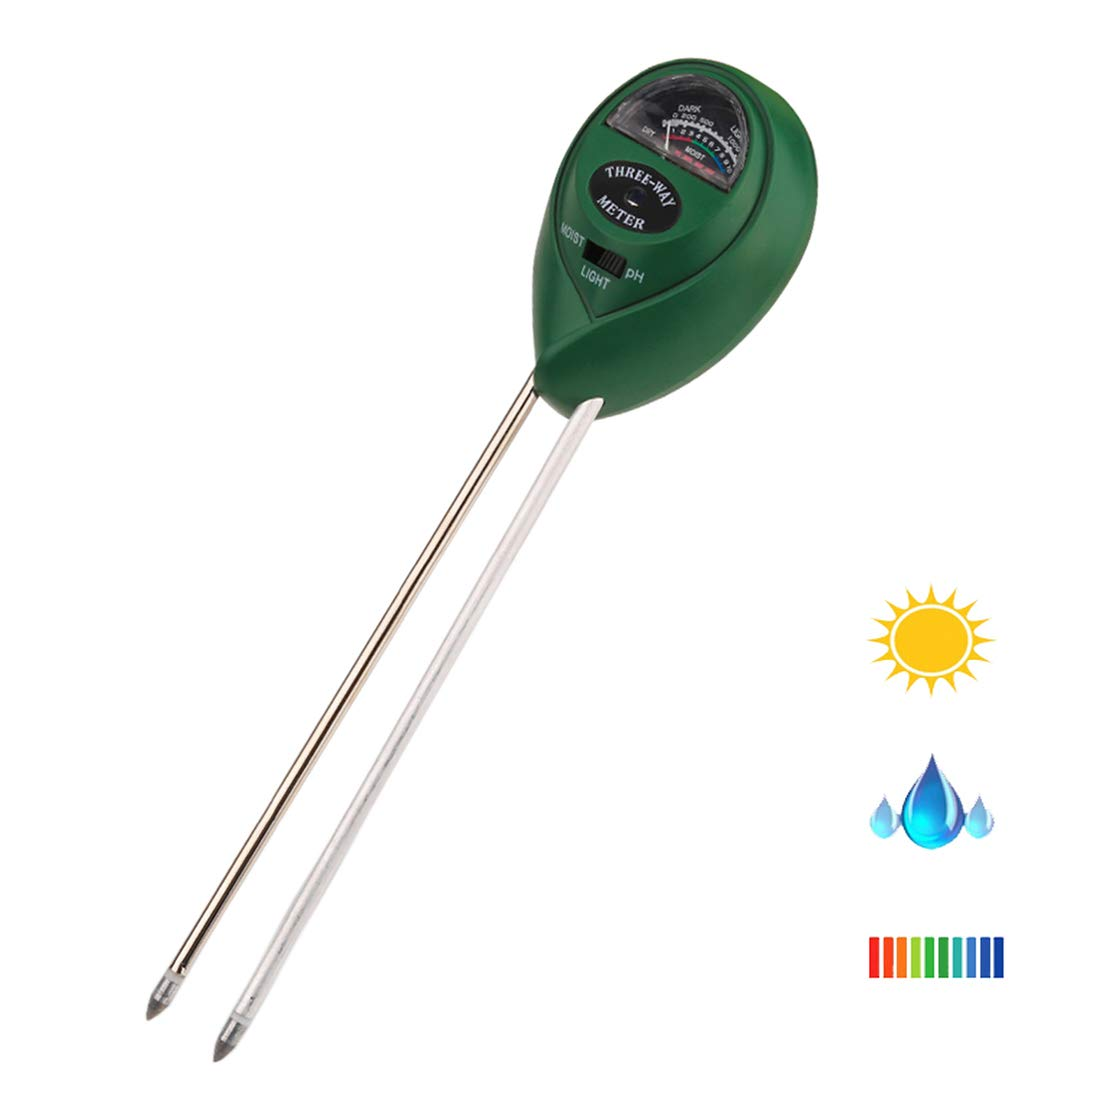 Kihappy Soil pH Meter, 3 in 1 Soil Test Kit for Moisture, Light & pH for Garden, Farm, Lawn, Plants, Herbs and Indoor & Outdoor Plants